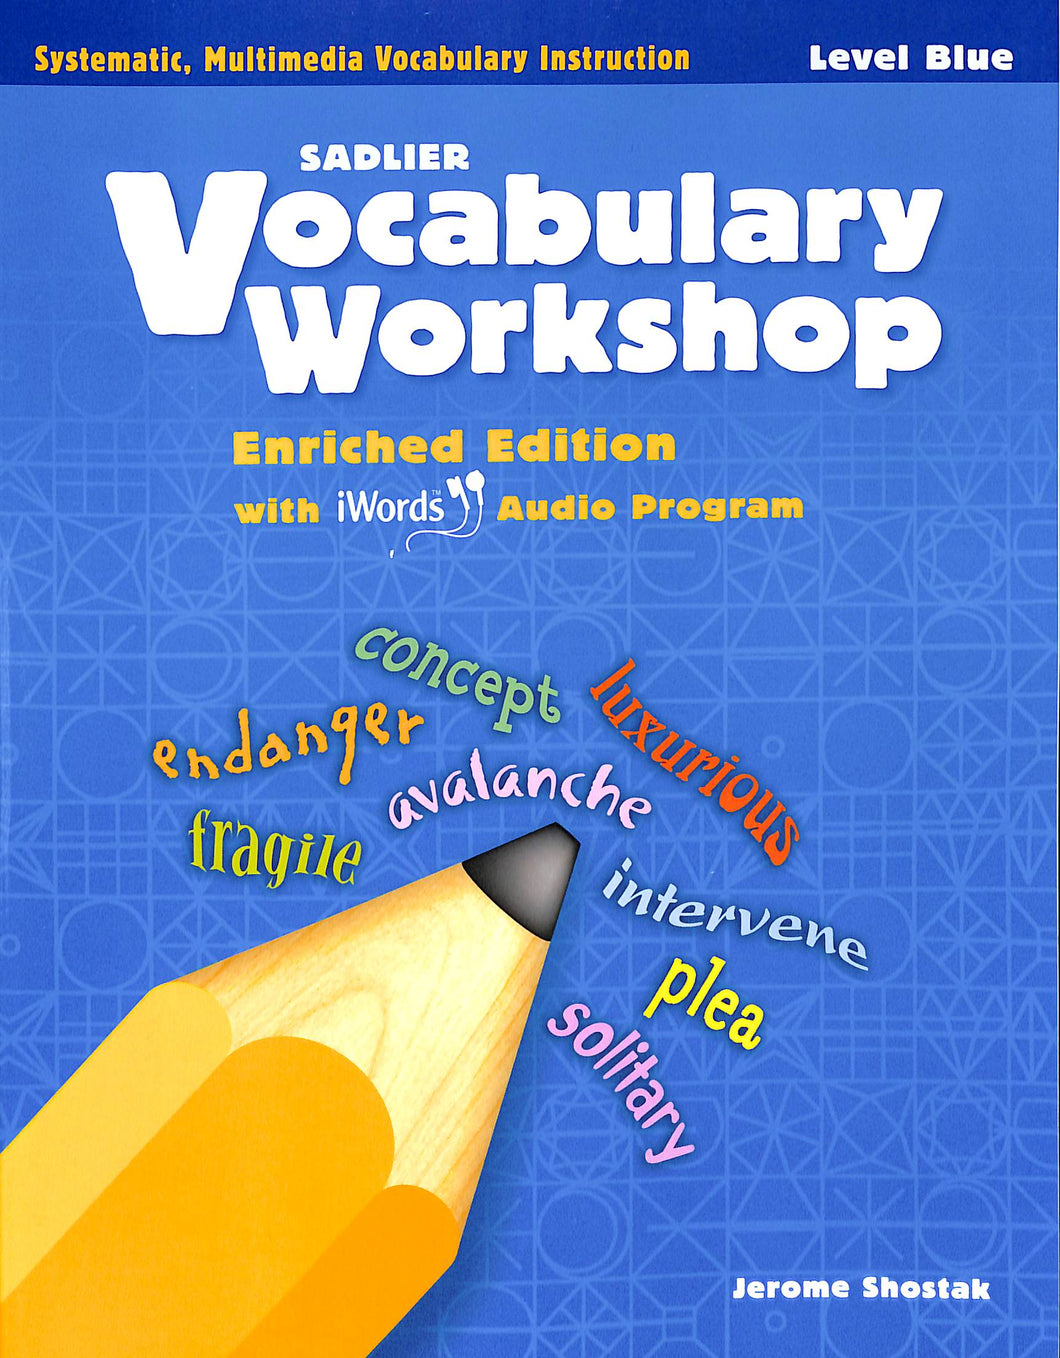 Vocabulary Workshop Level Blue Workbook